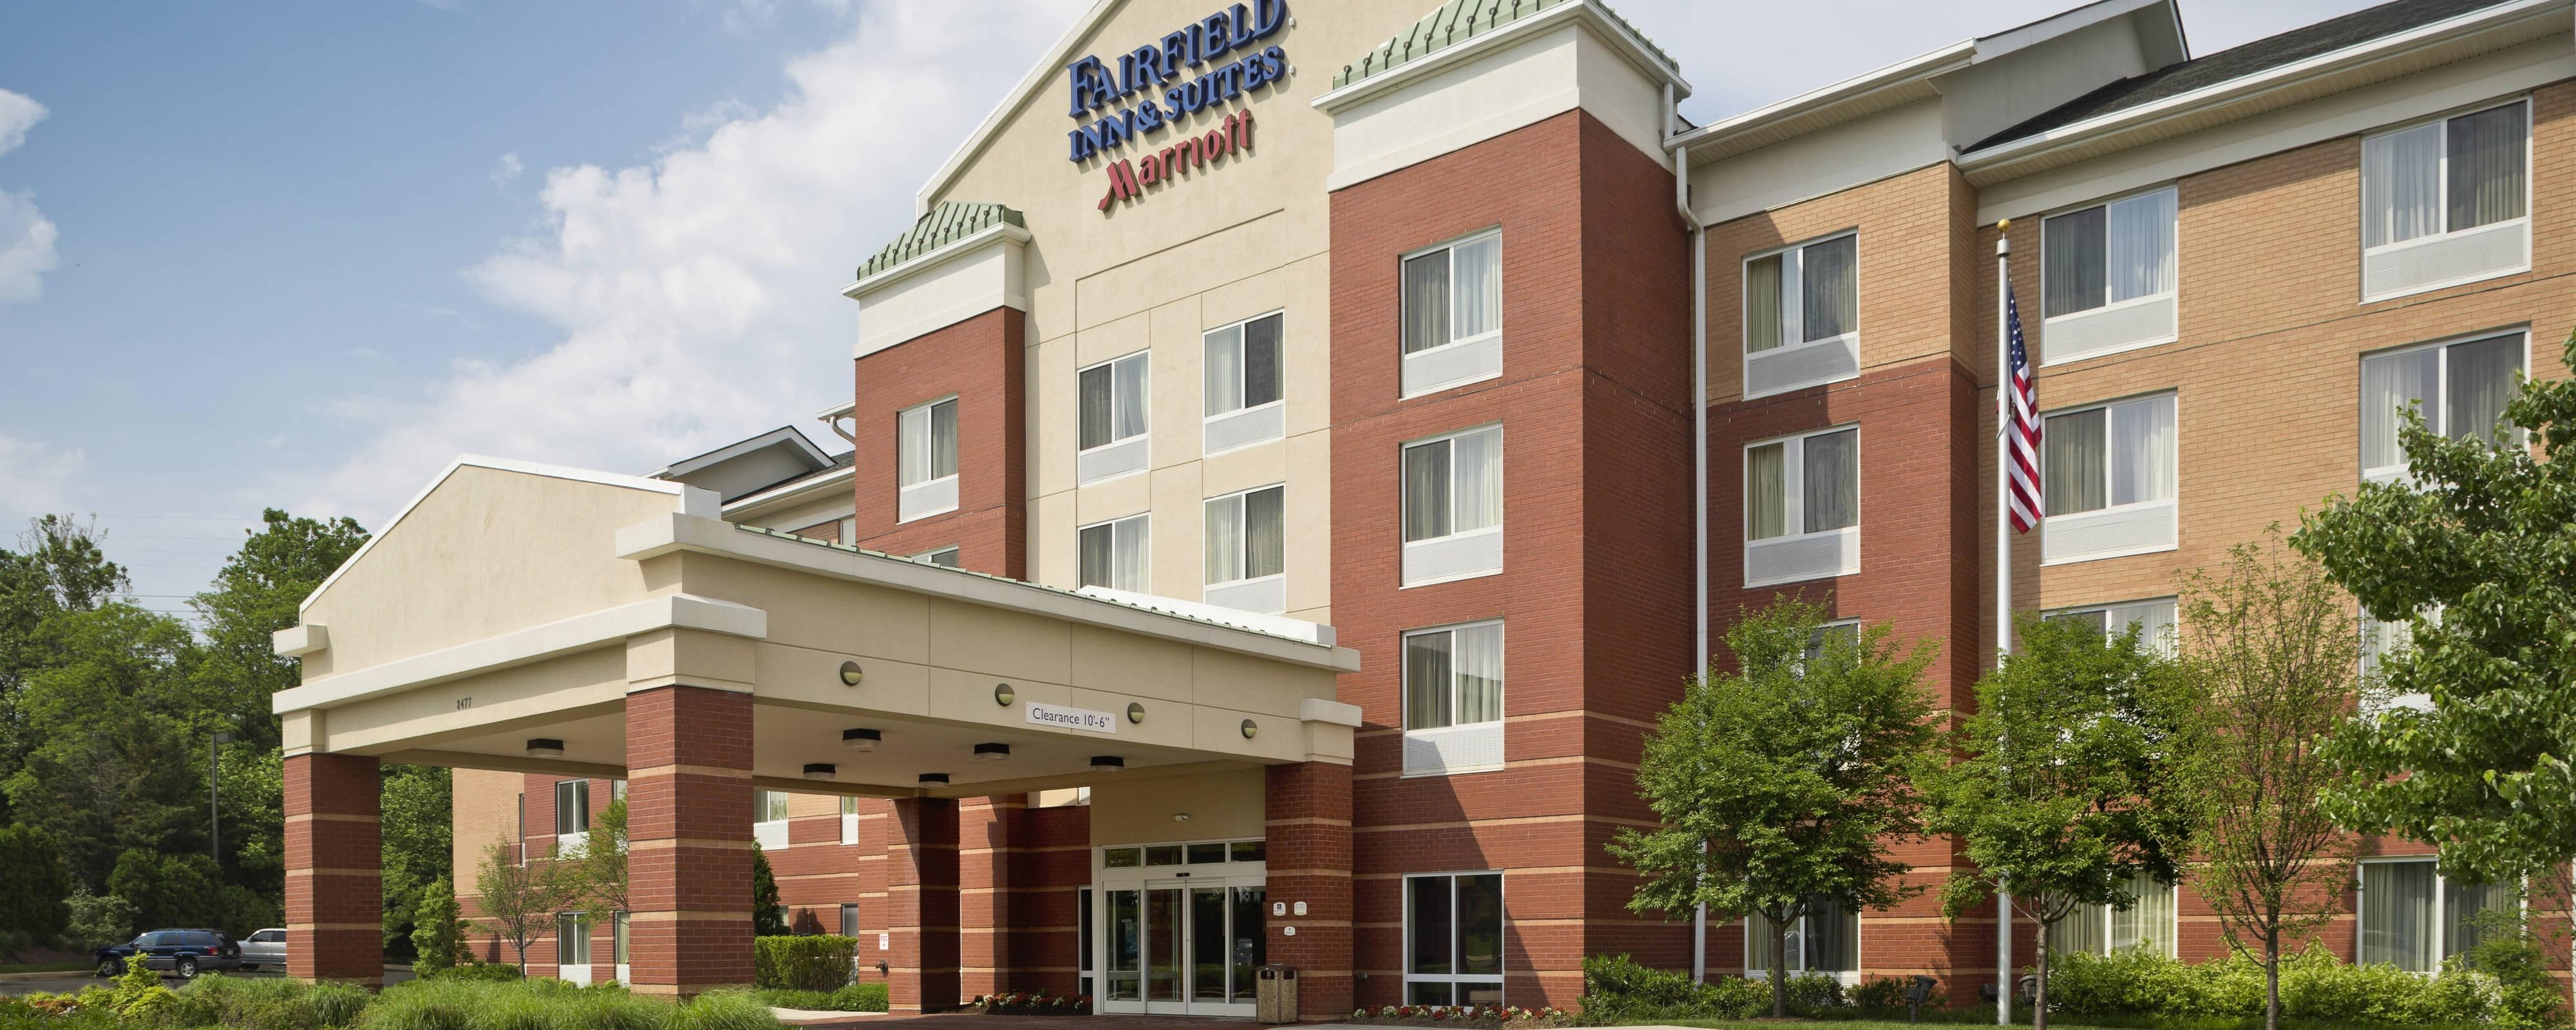 Fachada del Fairfield Inn & Suites White Marsh